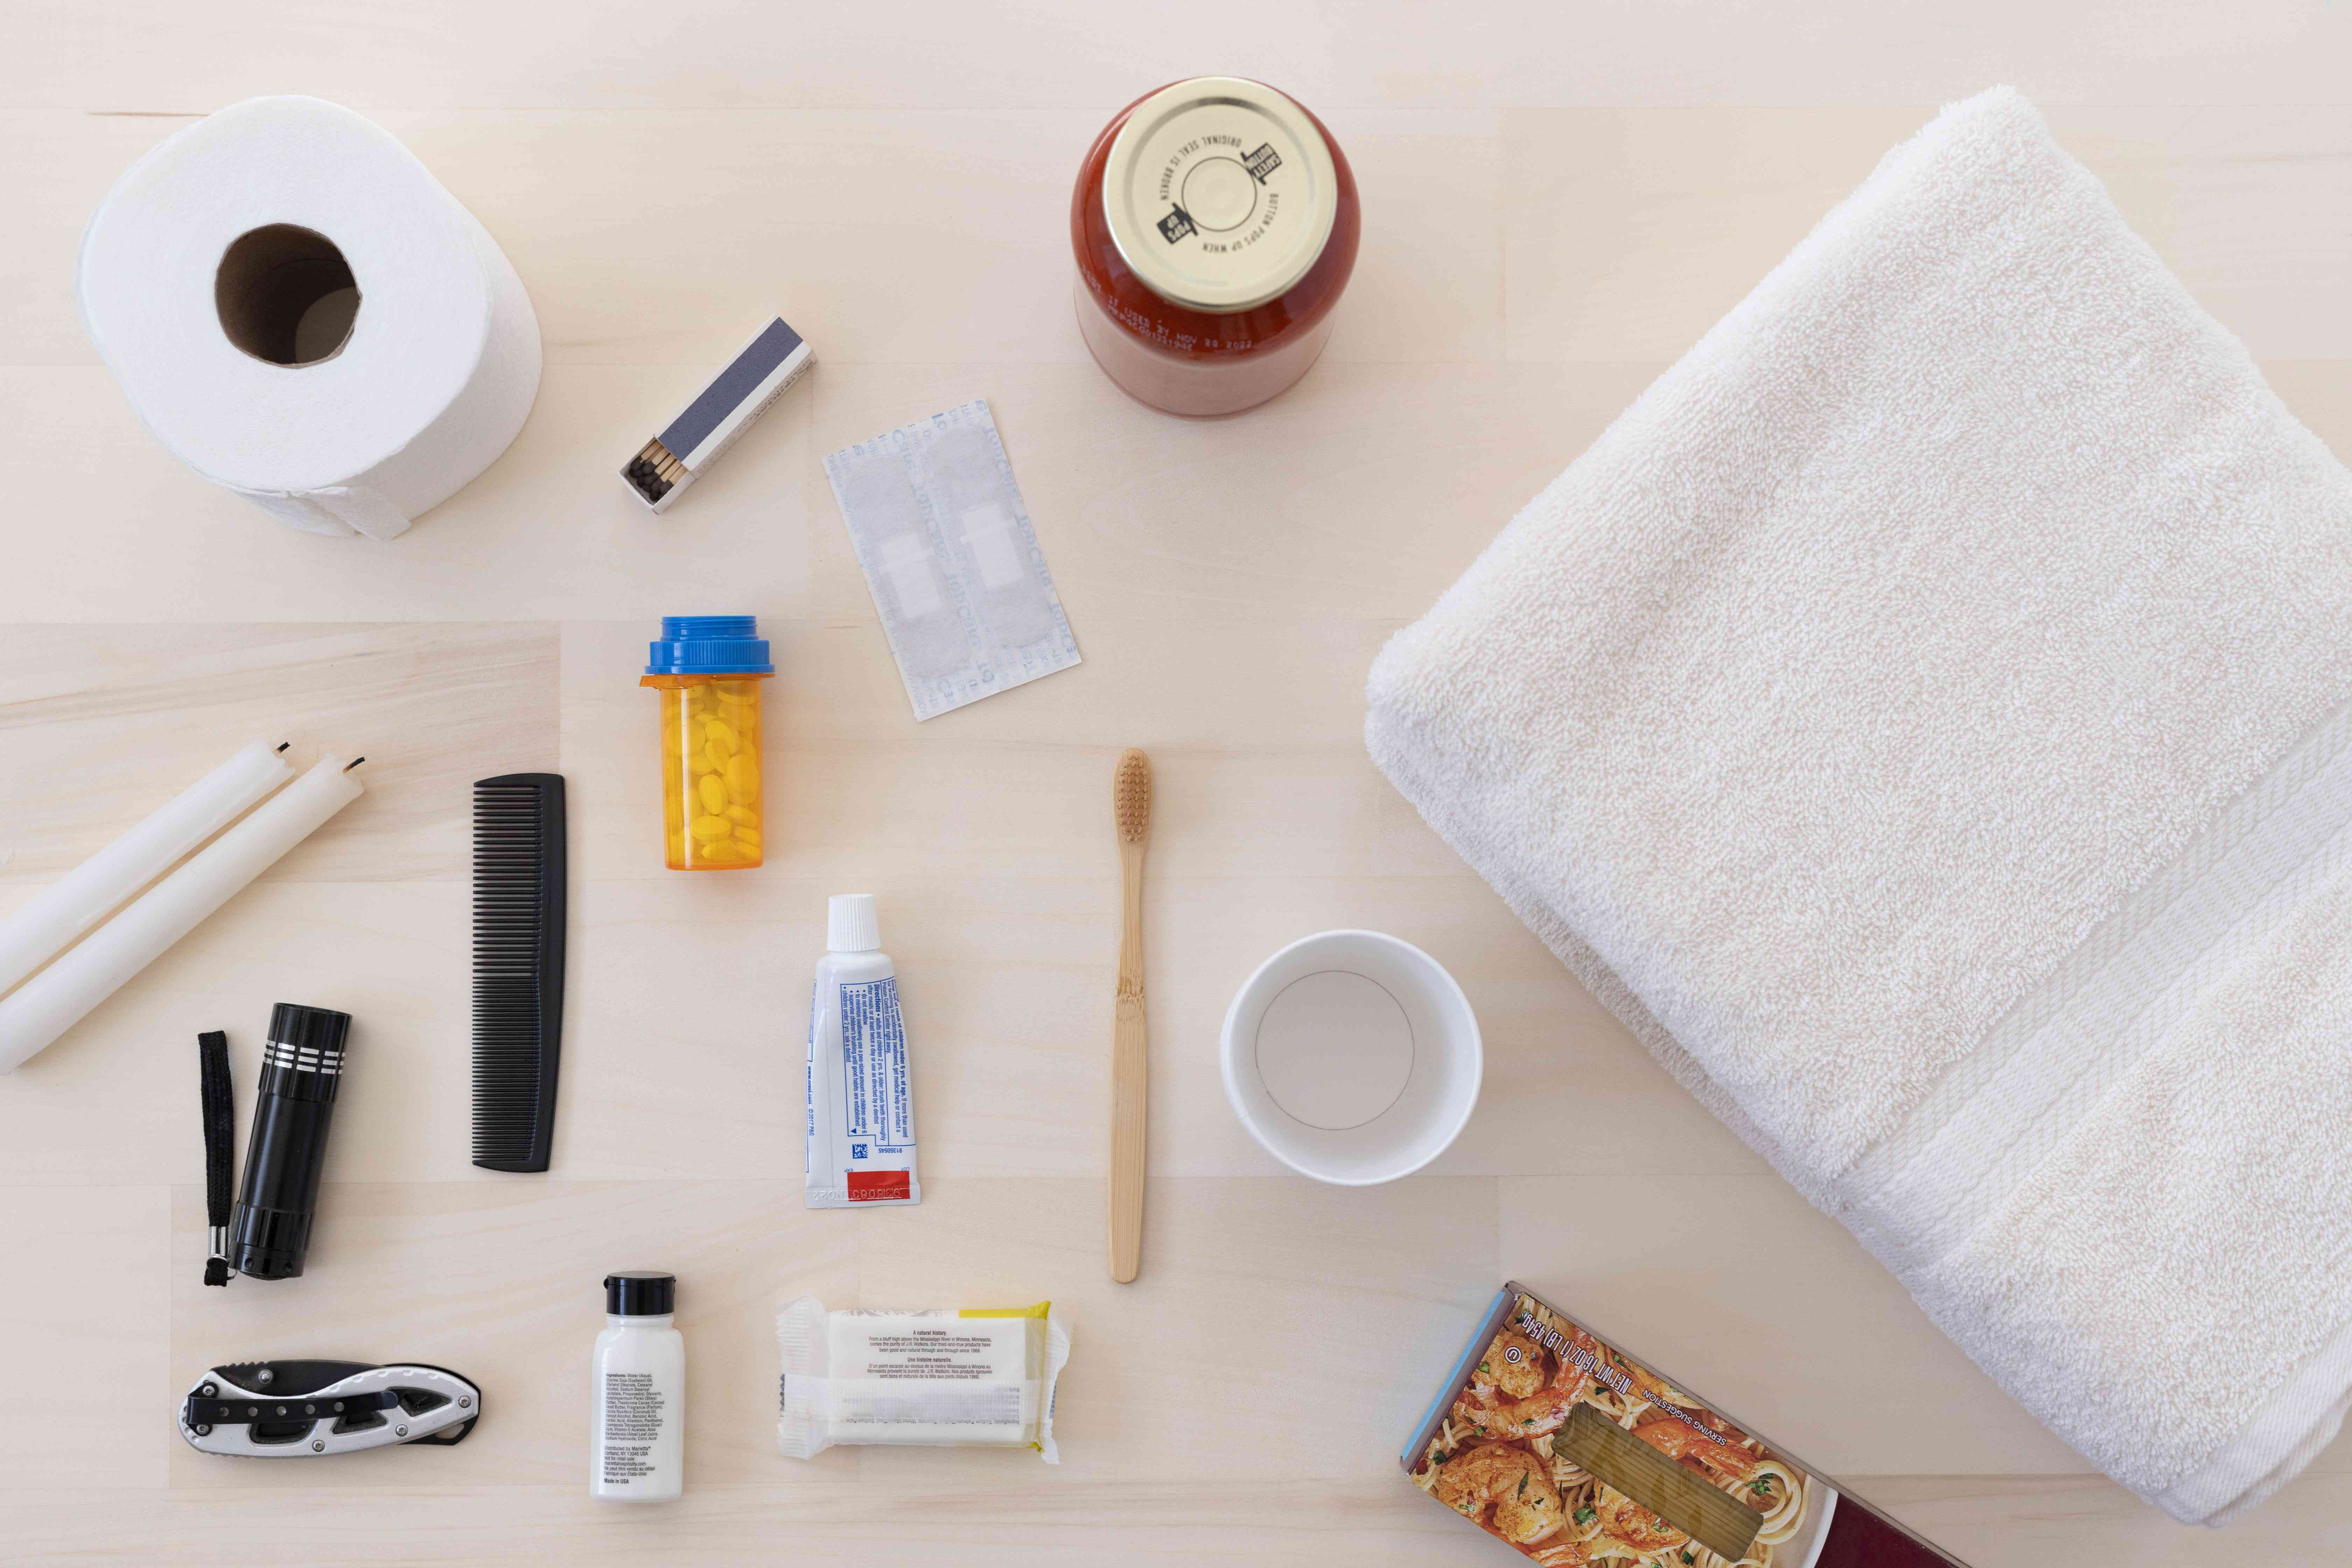 Small household and toiletry items laid to be packed in essentials box